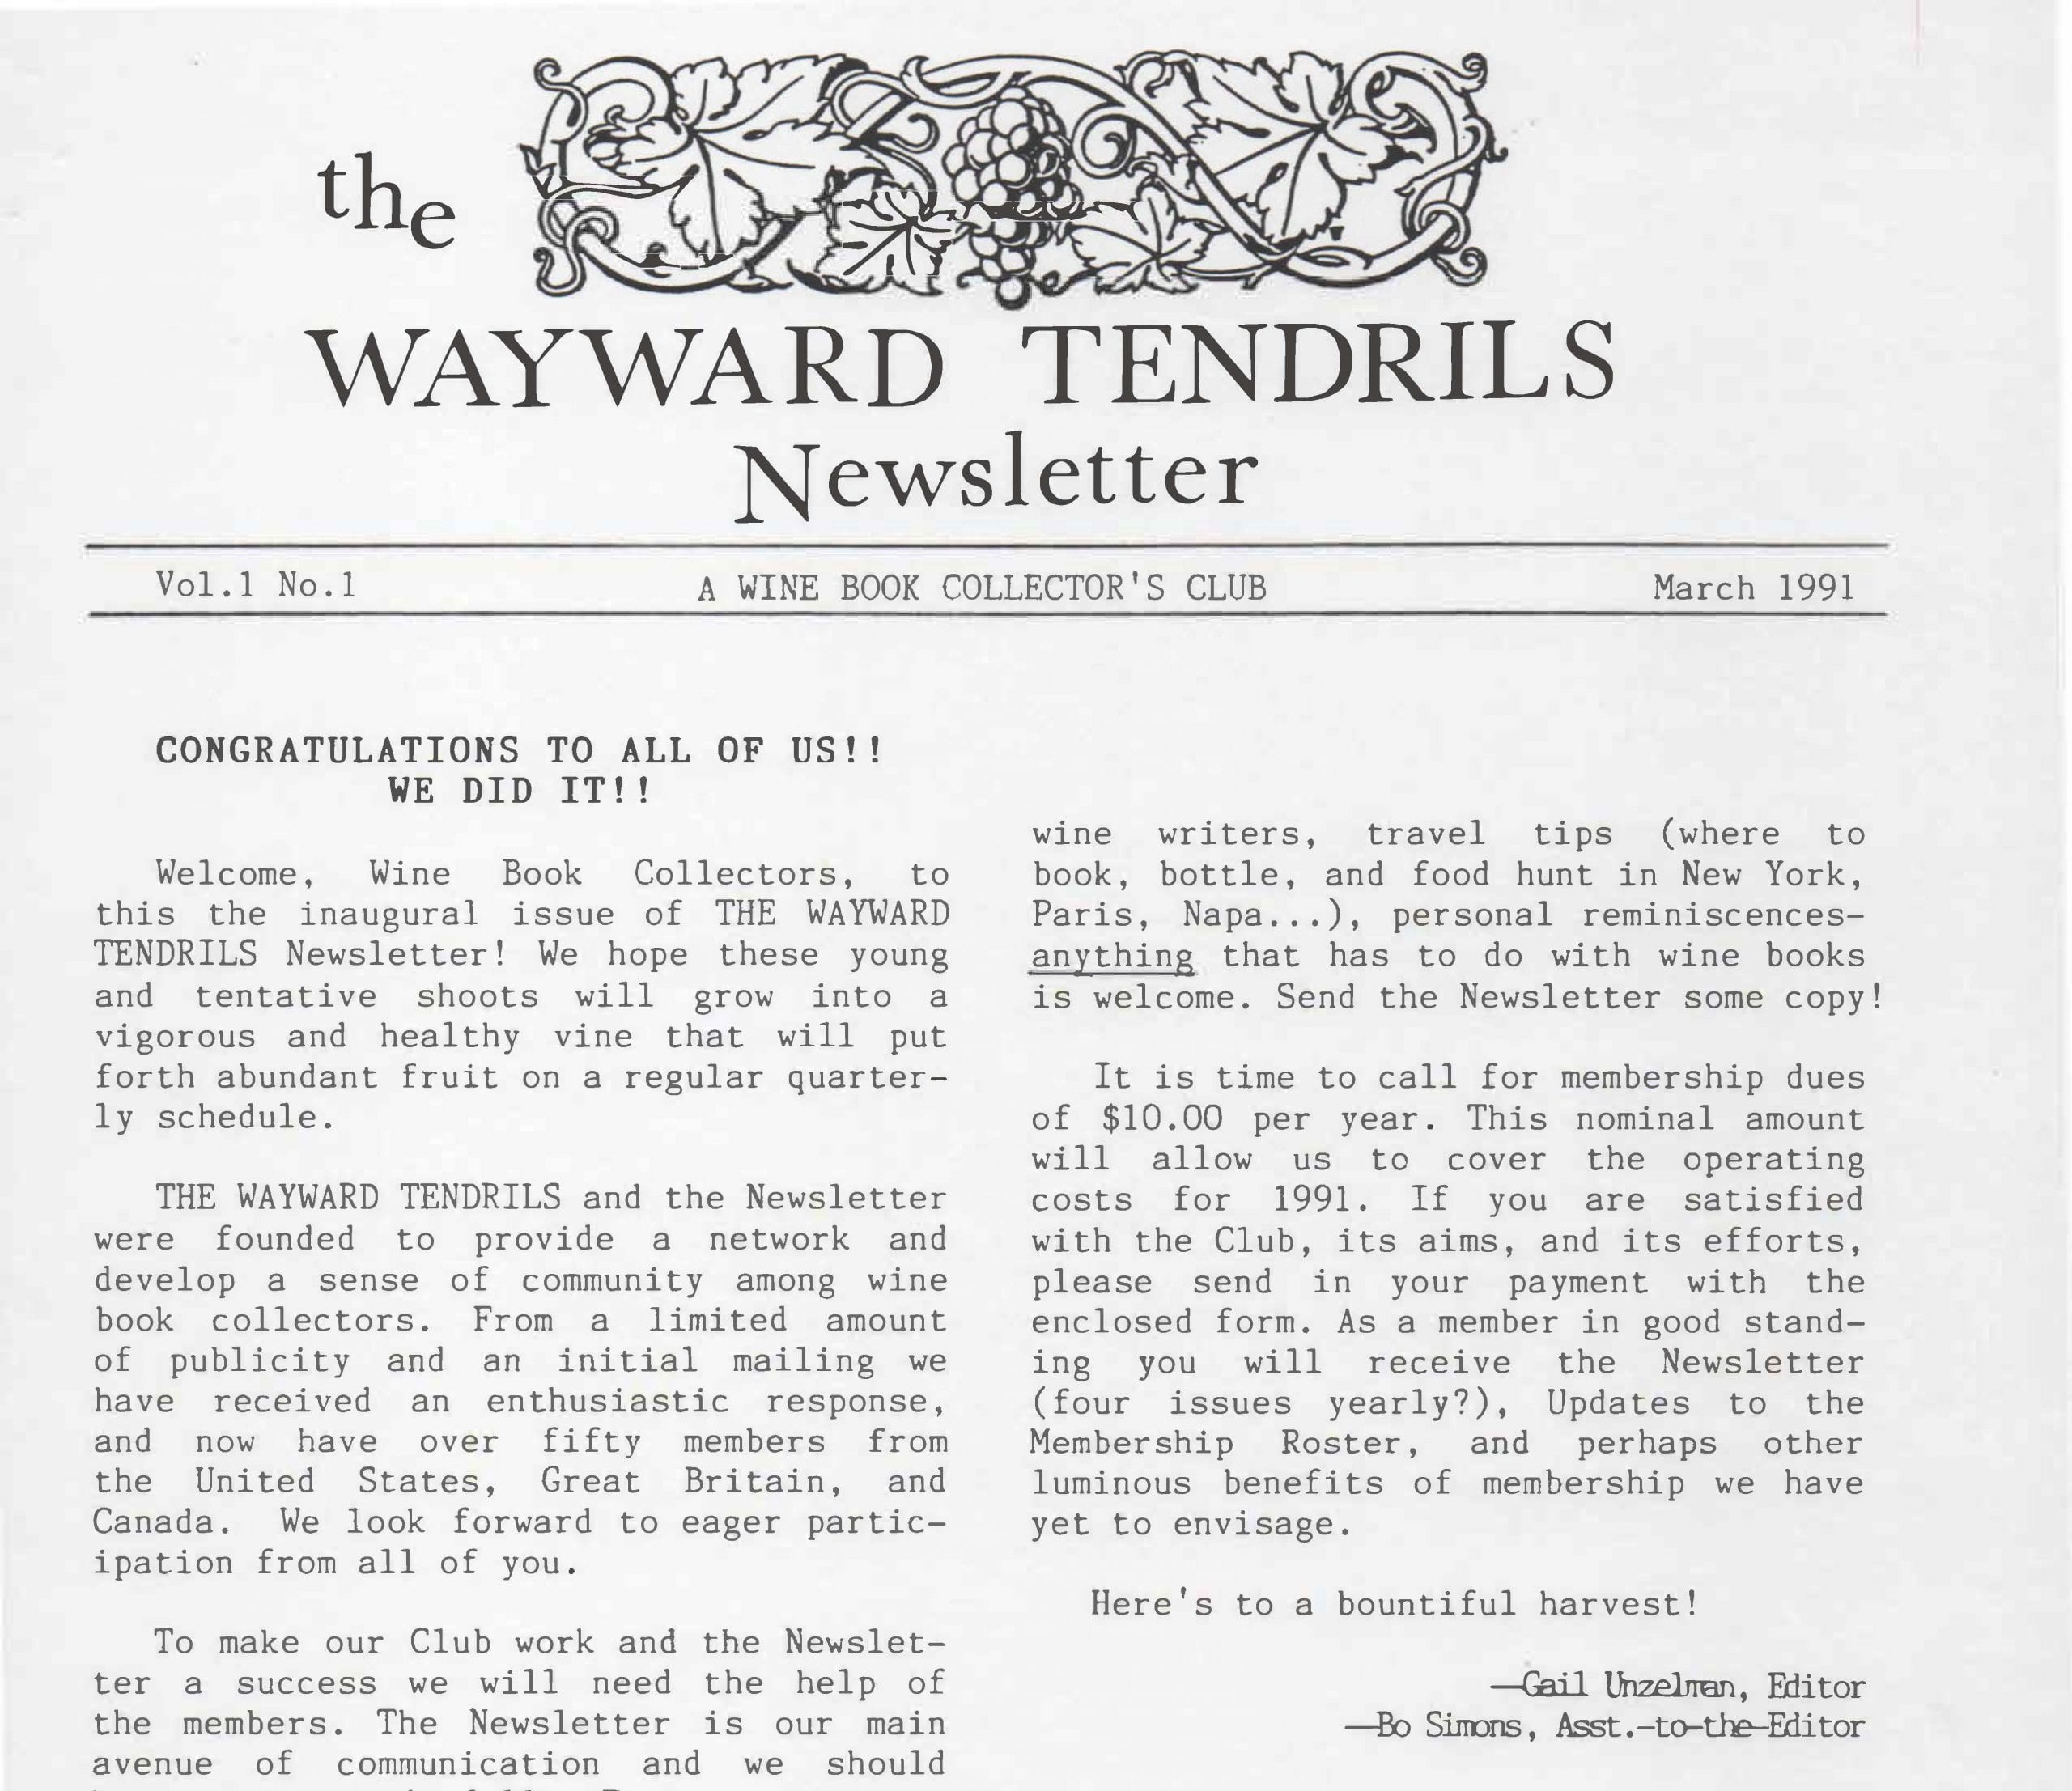 The first Wayward Tendrils Newsletter, March 1991